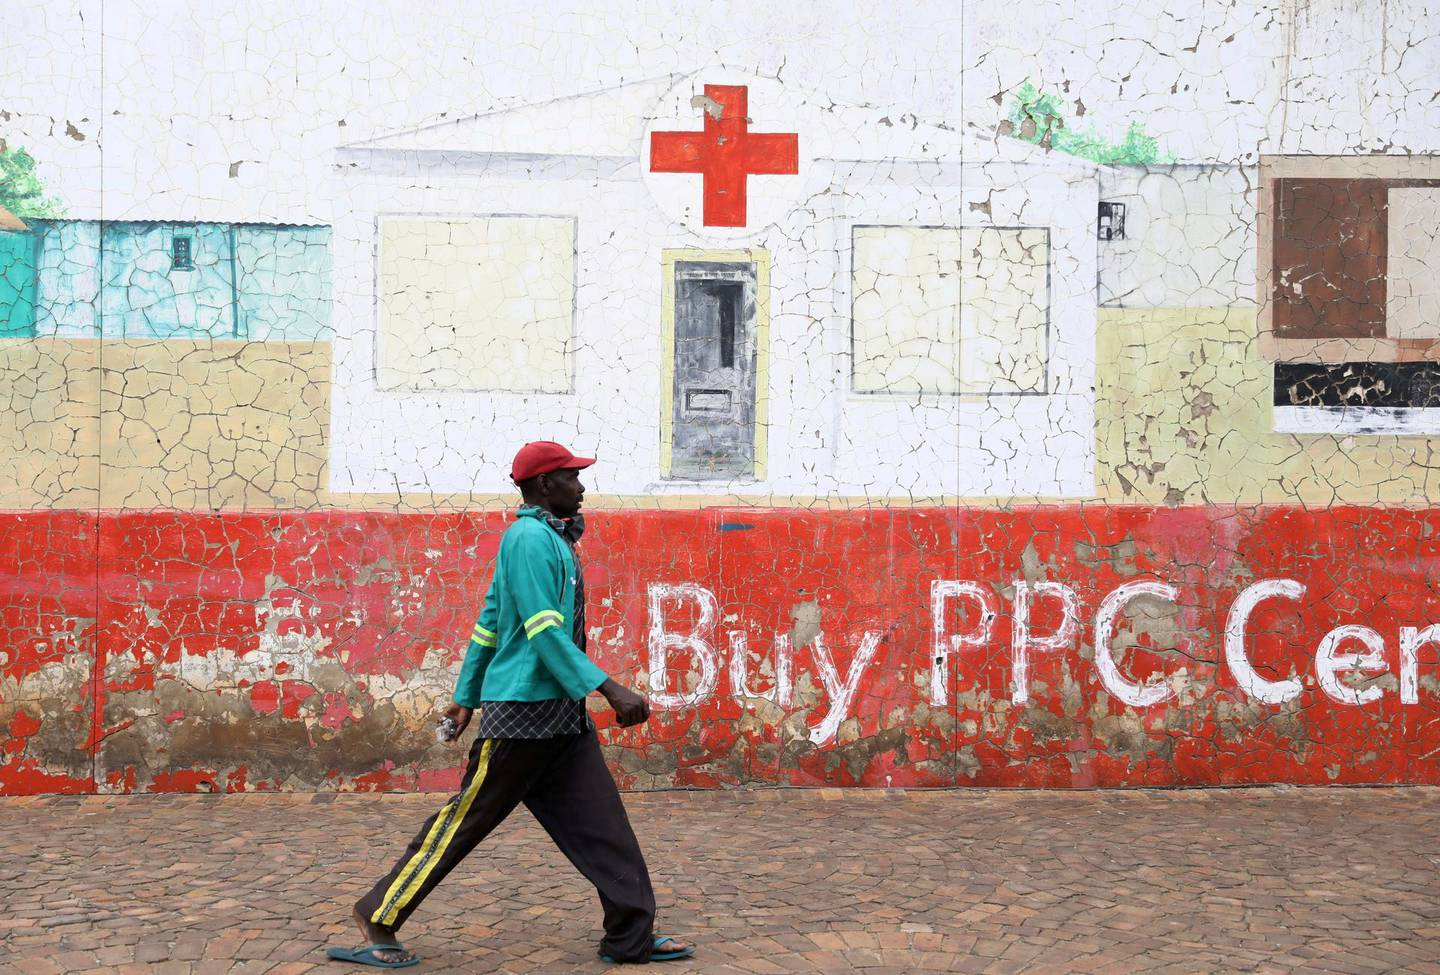 FILE PHOTO: A man walks beneath a mural depicting a hospital in Soweto, South Africa, December 28, 2020. REUTERS/Siphiwe Sibeko/File Photo